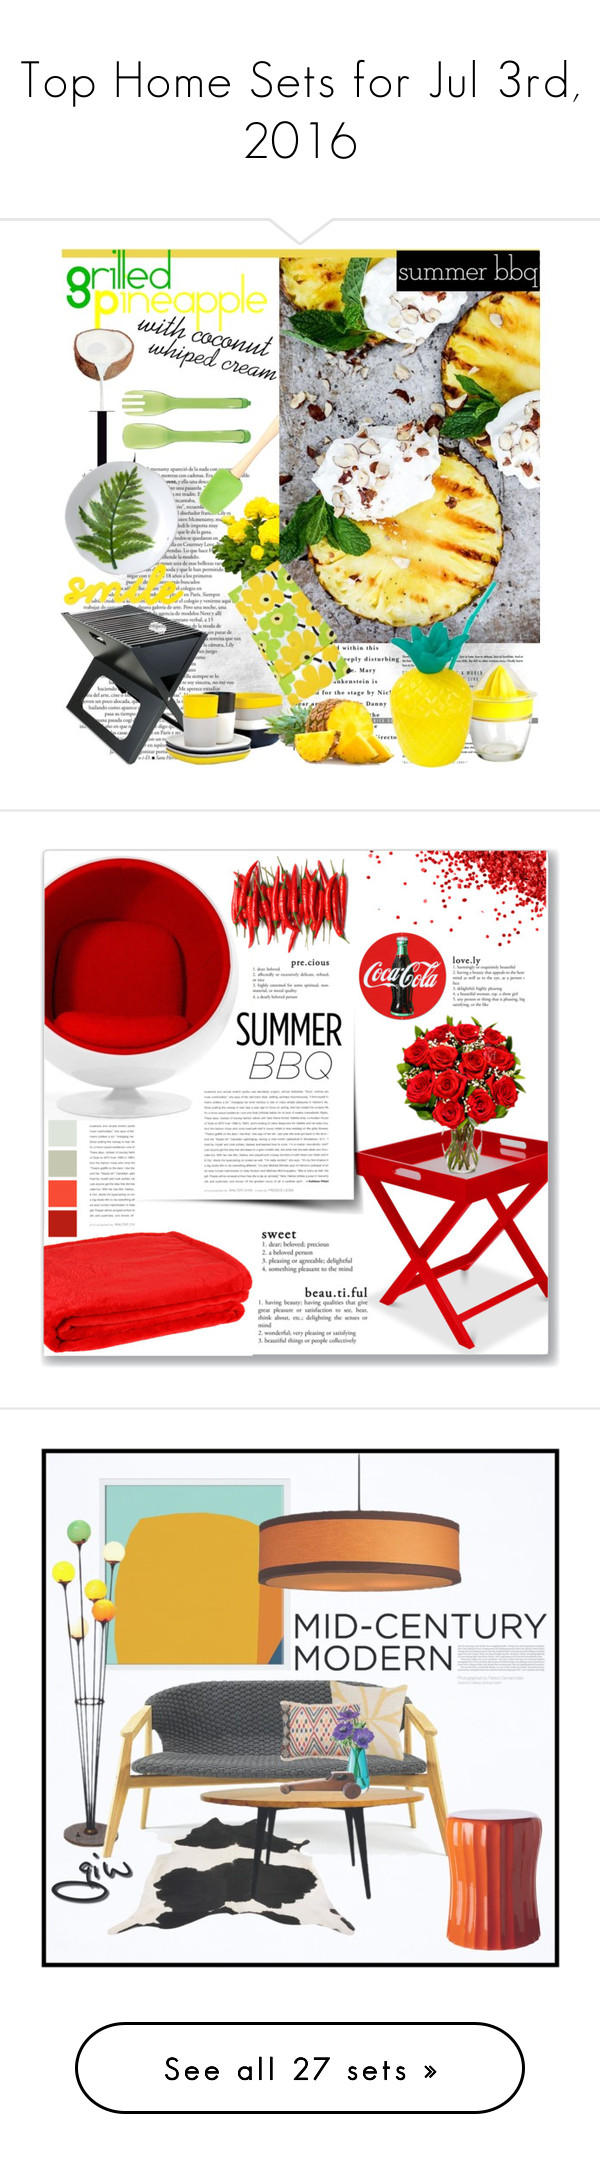 """""""Top Home Sets for Jul 3rd, 2016"""" by polyvore ❤ liked on Polyvore featuring interior, interiors, interior design, home, home decor, interior decorating, Cooks Tools, Jayson Home, Prepara and Picnic Time"""